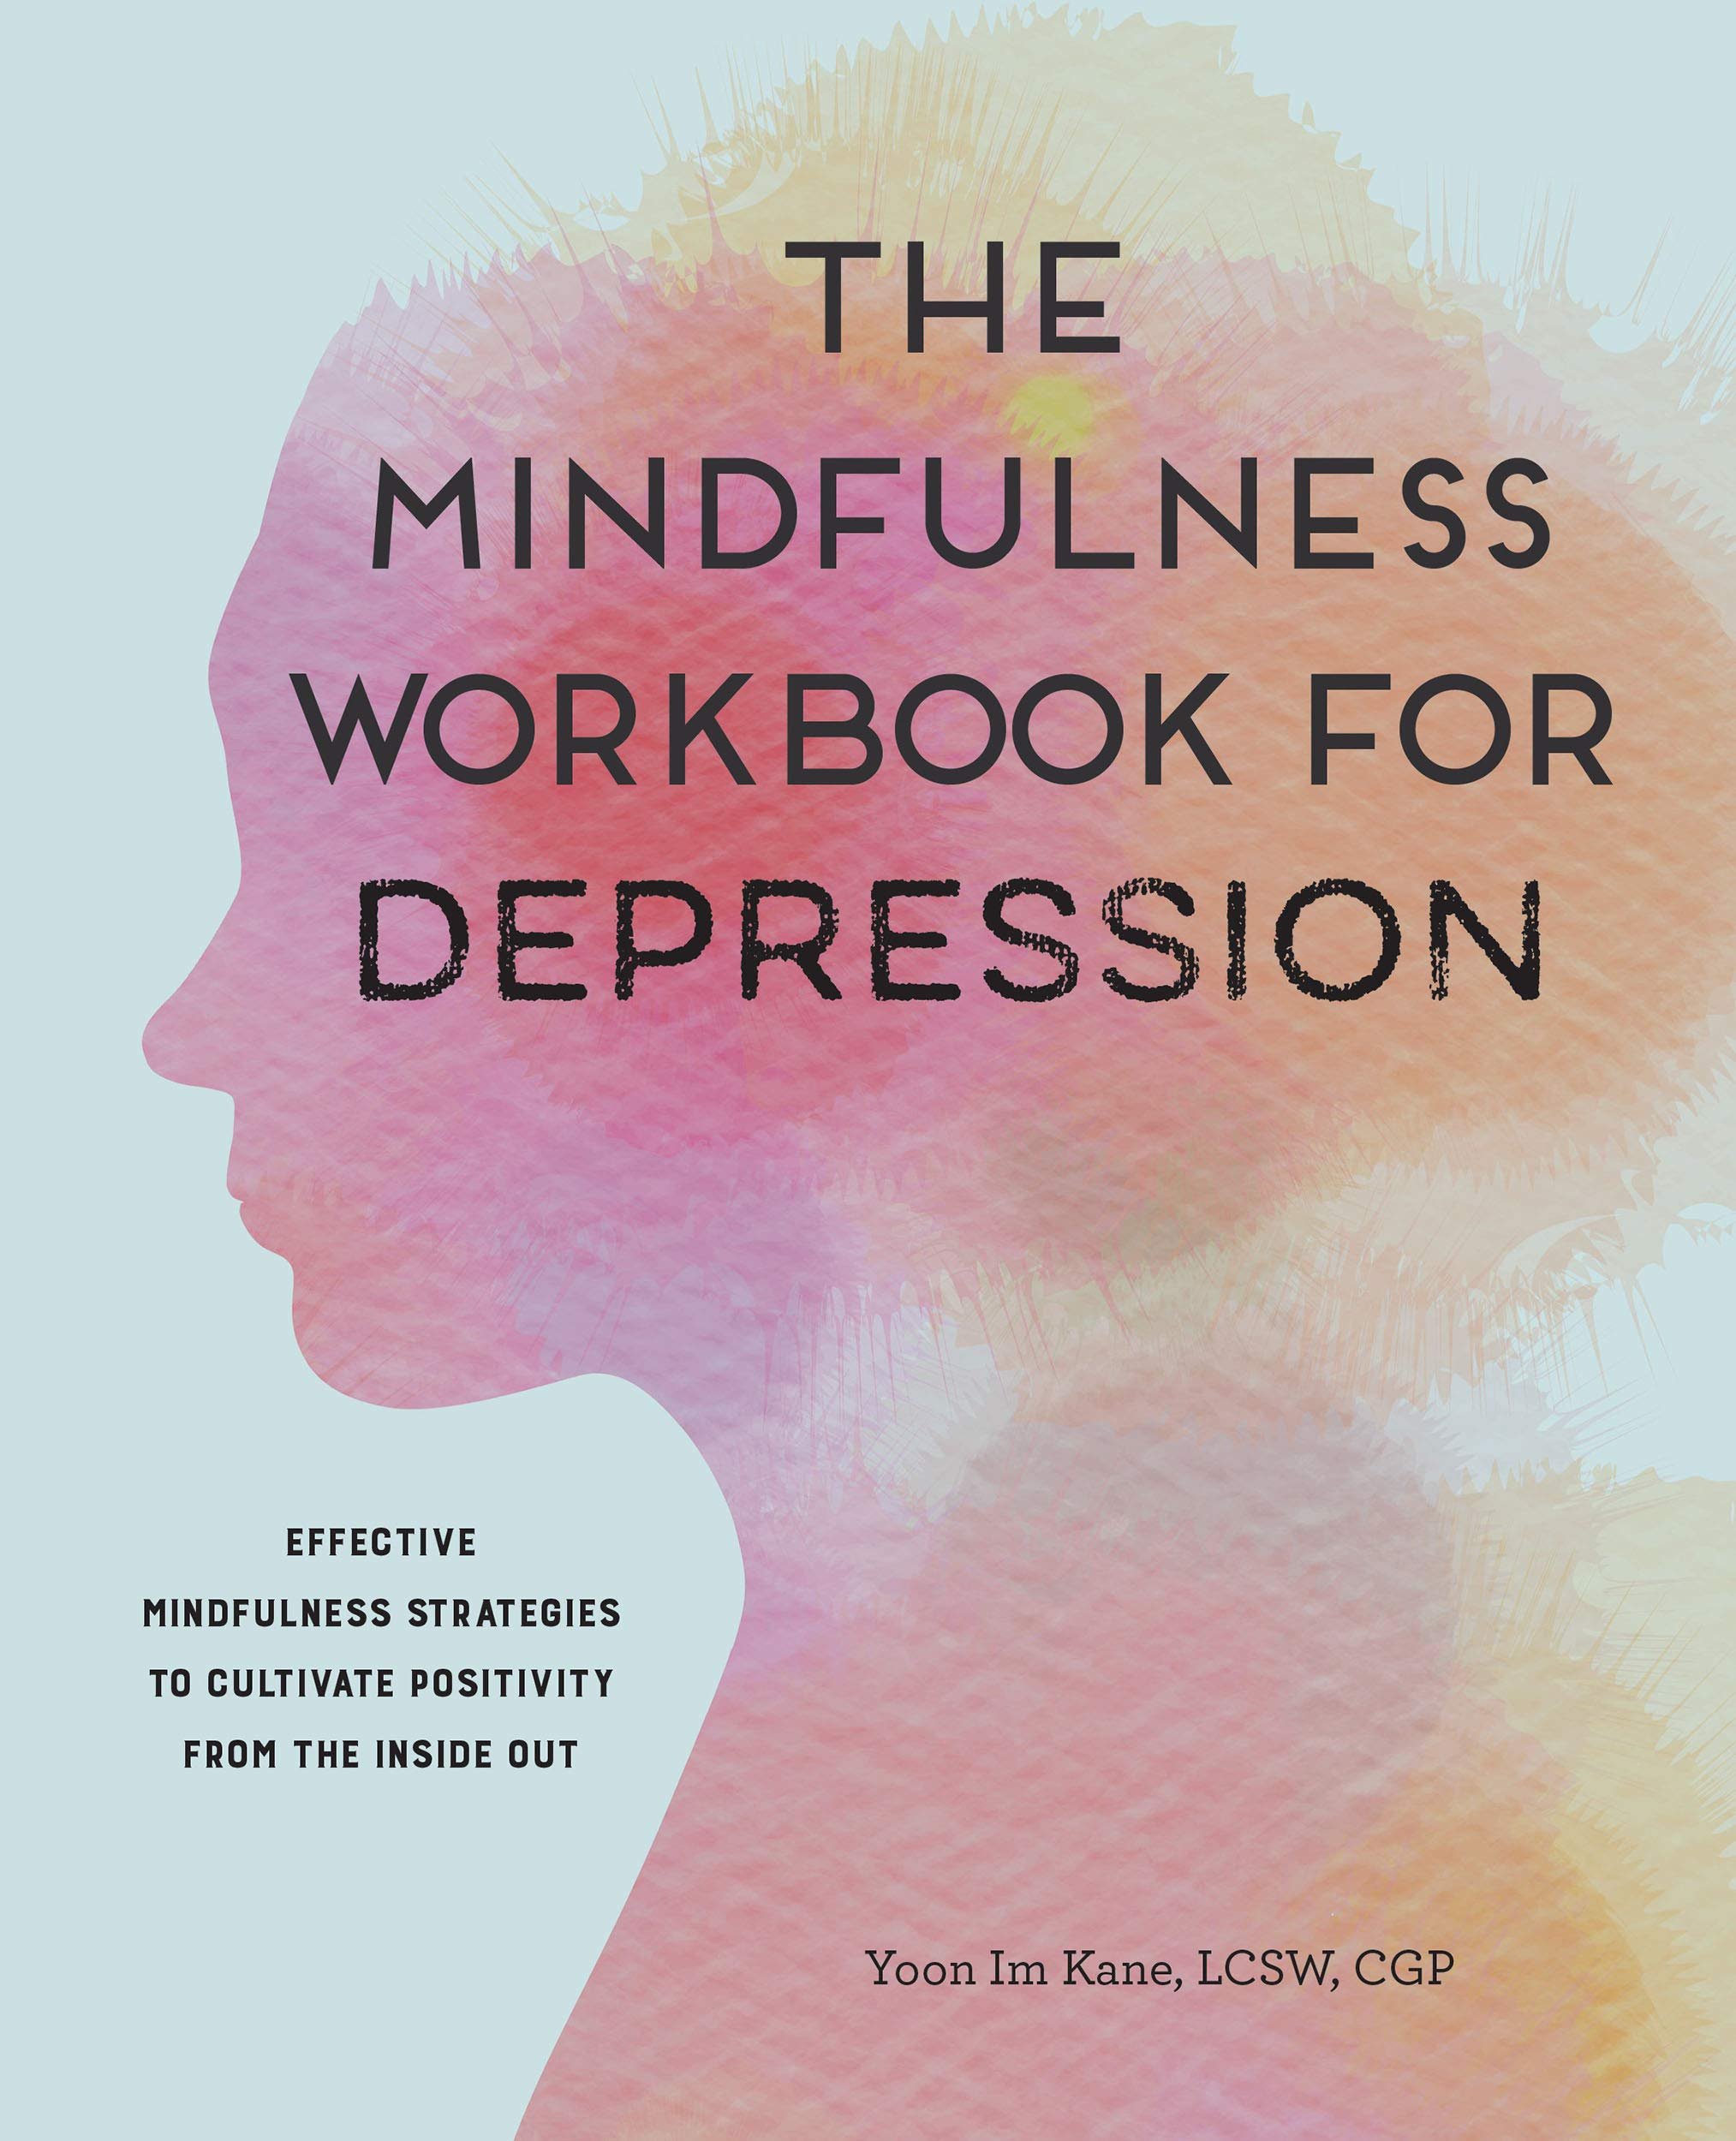 Download The Mindfulness Workbook For Depression: Effective Mindfulness Strategies To Cultivate Positivity From The Inside Out 